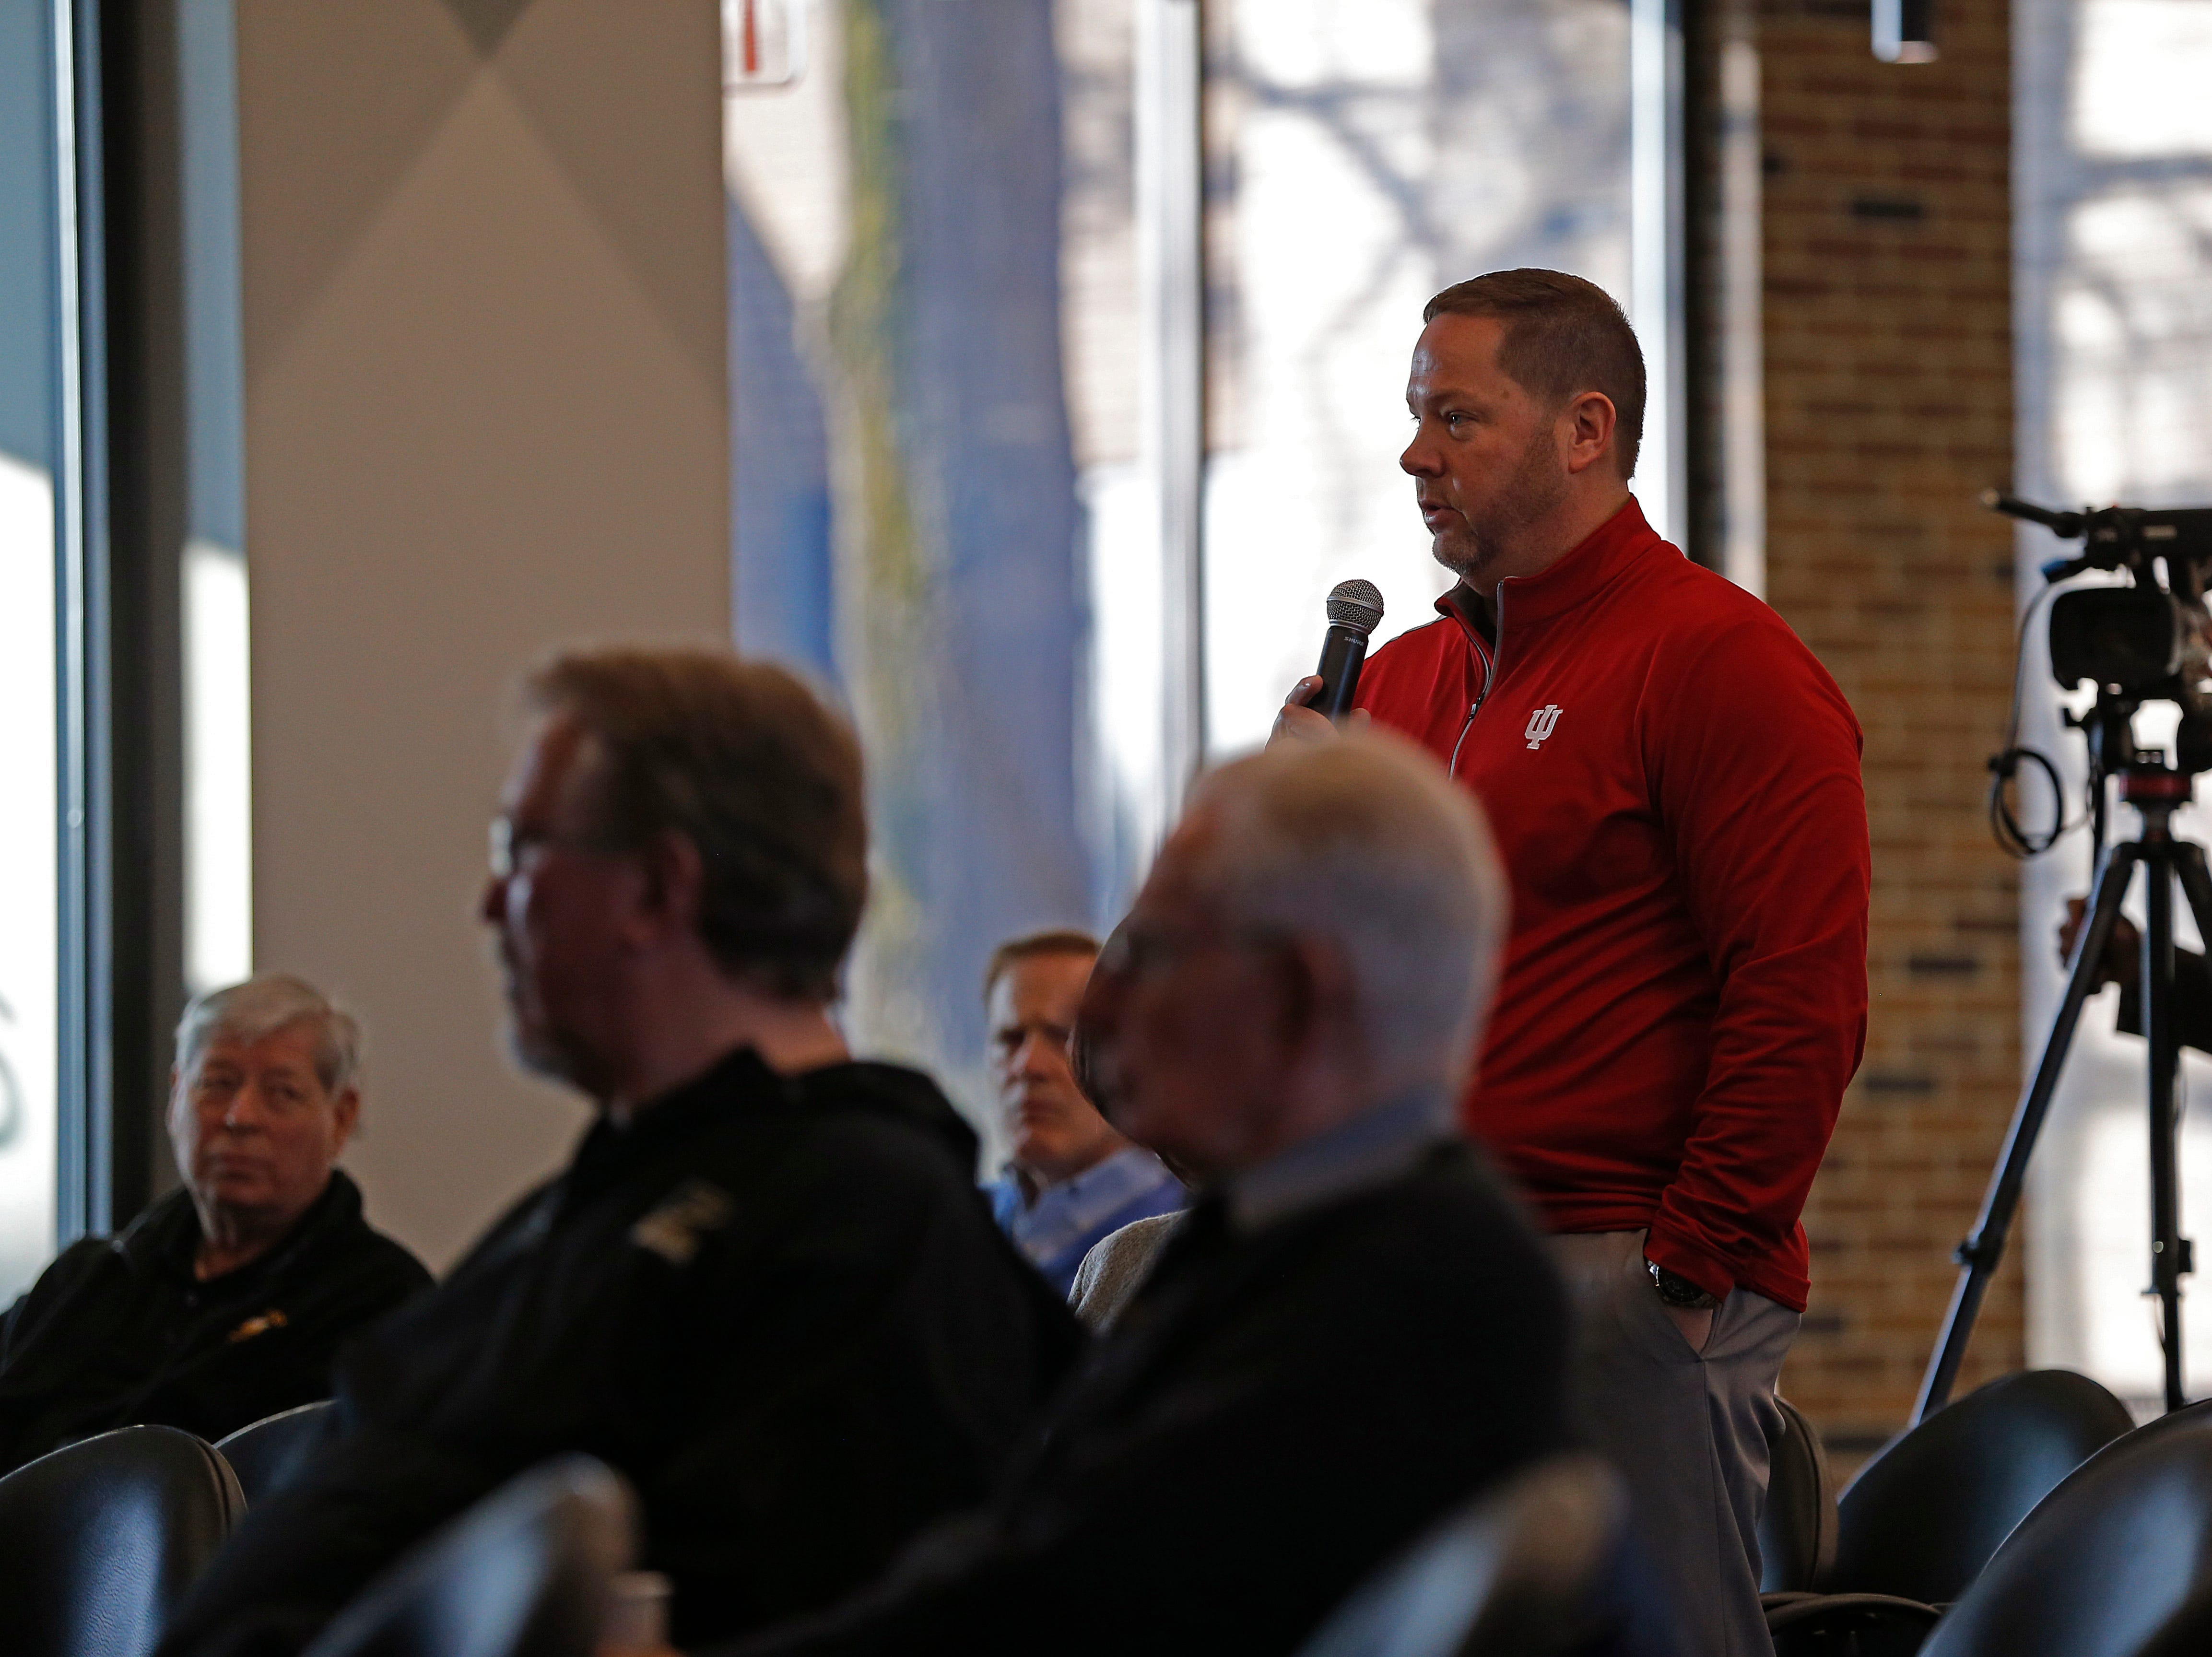 Richmond Community Schools Superintendent Todd Terrill makes a comment at the end of Friday's Legislative Forum event in Whitewater Hall on the IU East campus in Richmond.